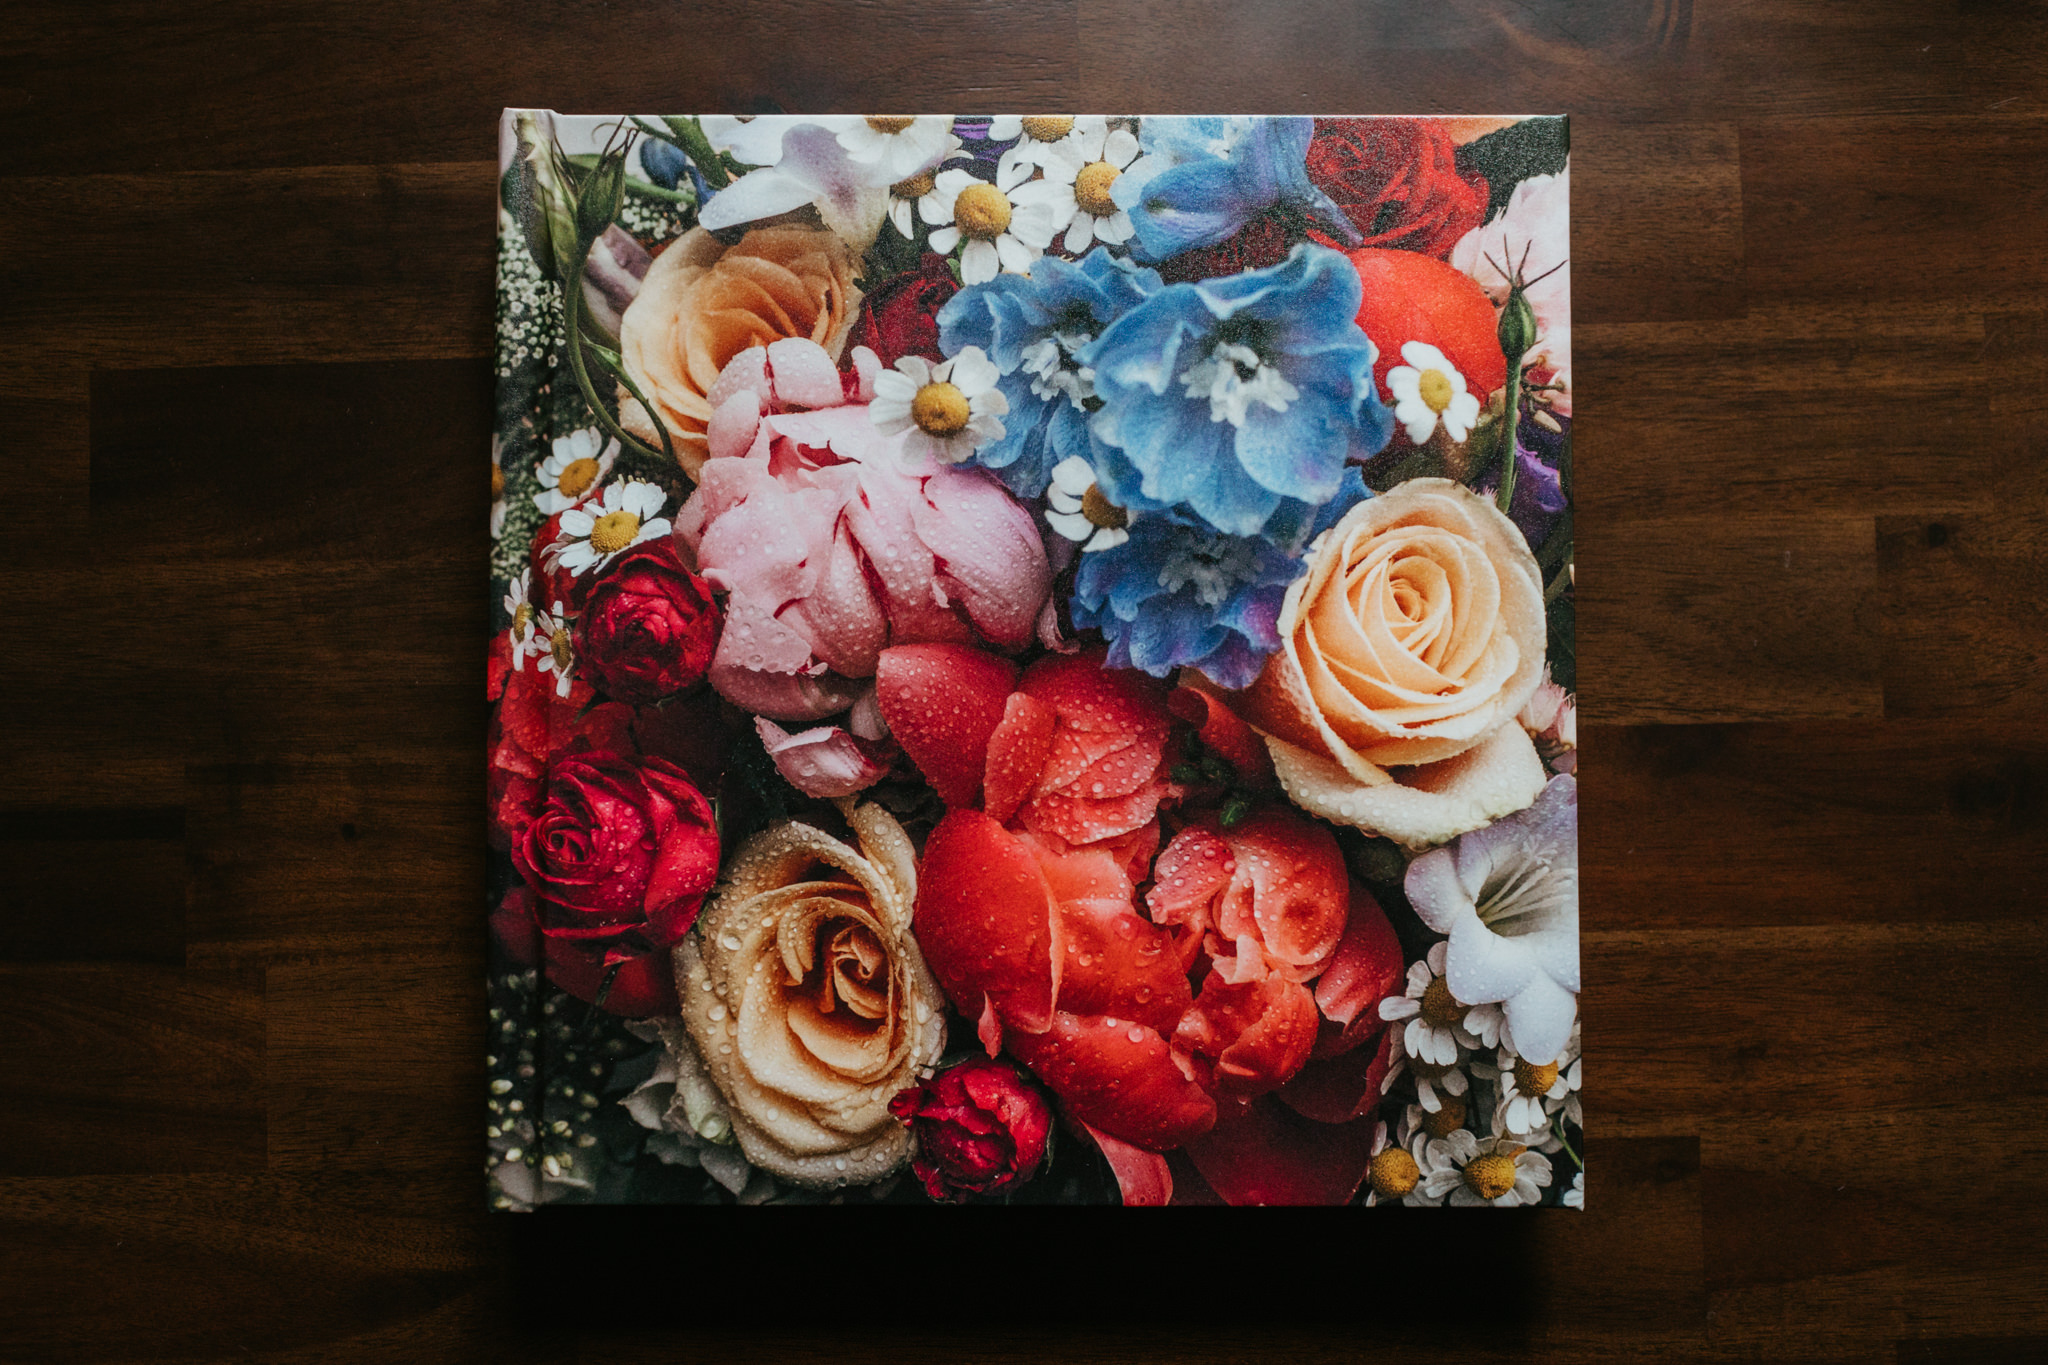 1. The Heirloom Album - The book, 12x12 inch: A printed hard cover, with thick seamles spreads allowing your favorite images to carry over the page. Its 50 pages beautifully tells the story of your wedding.